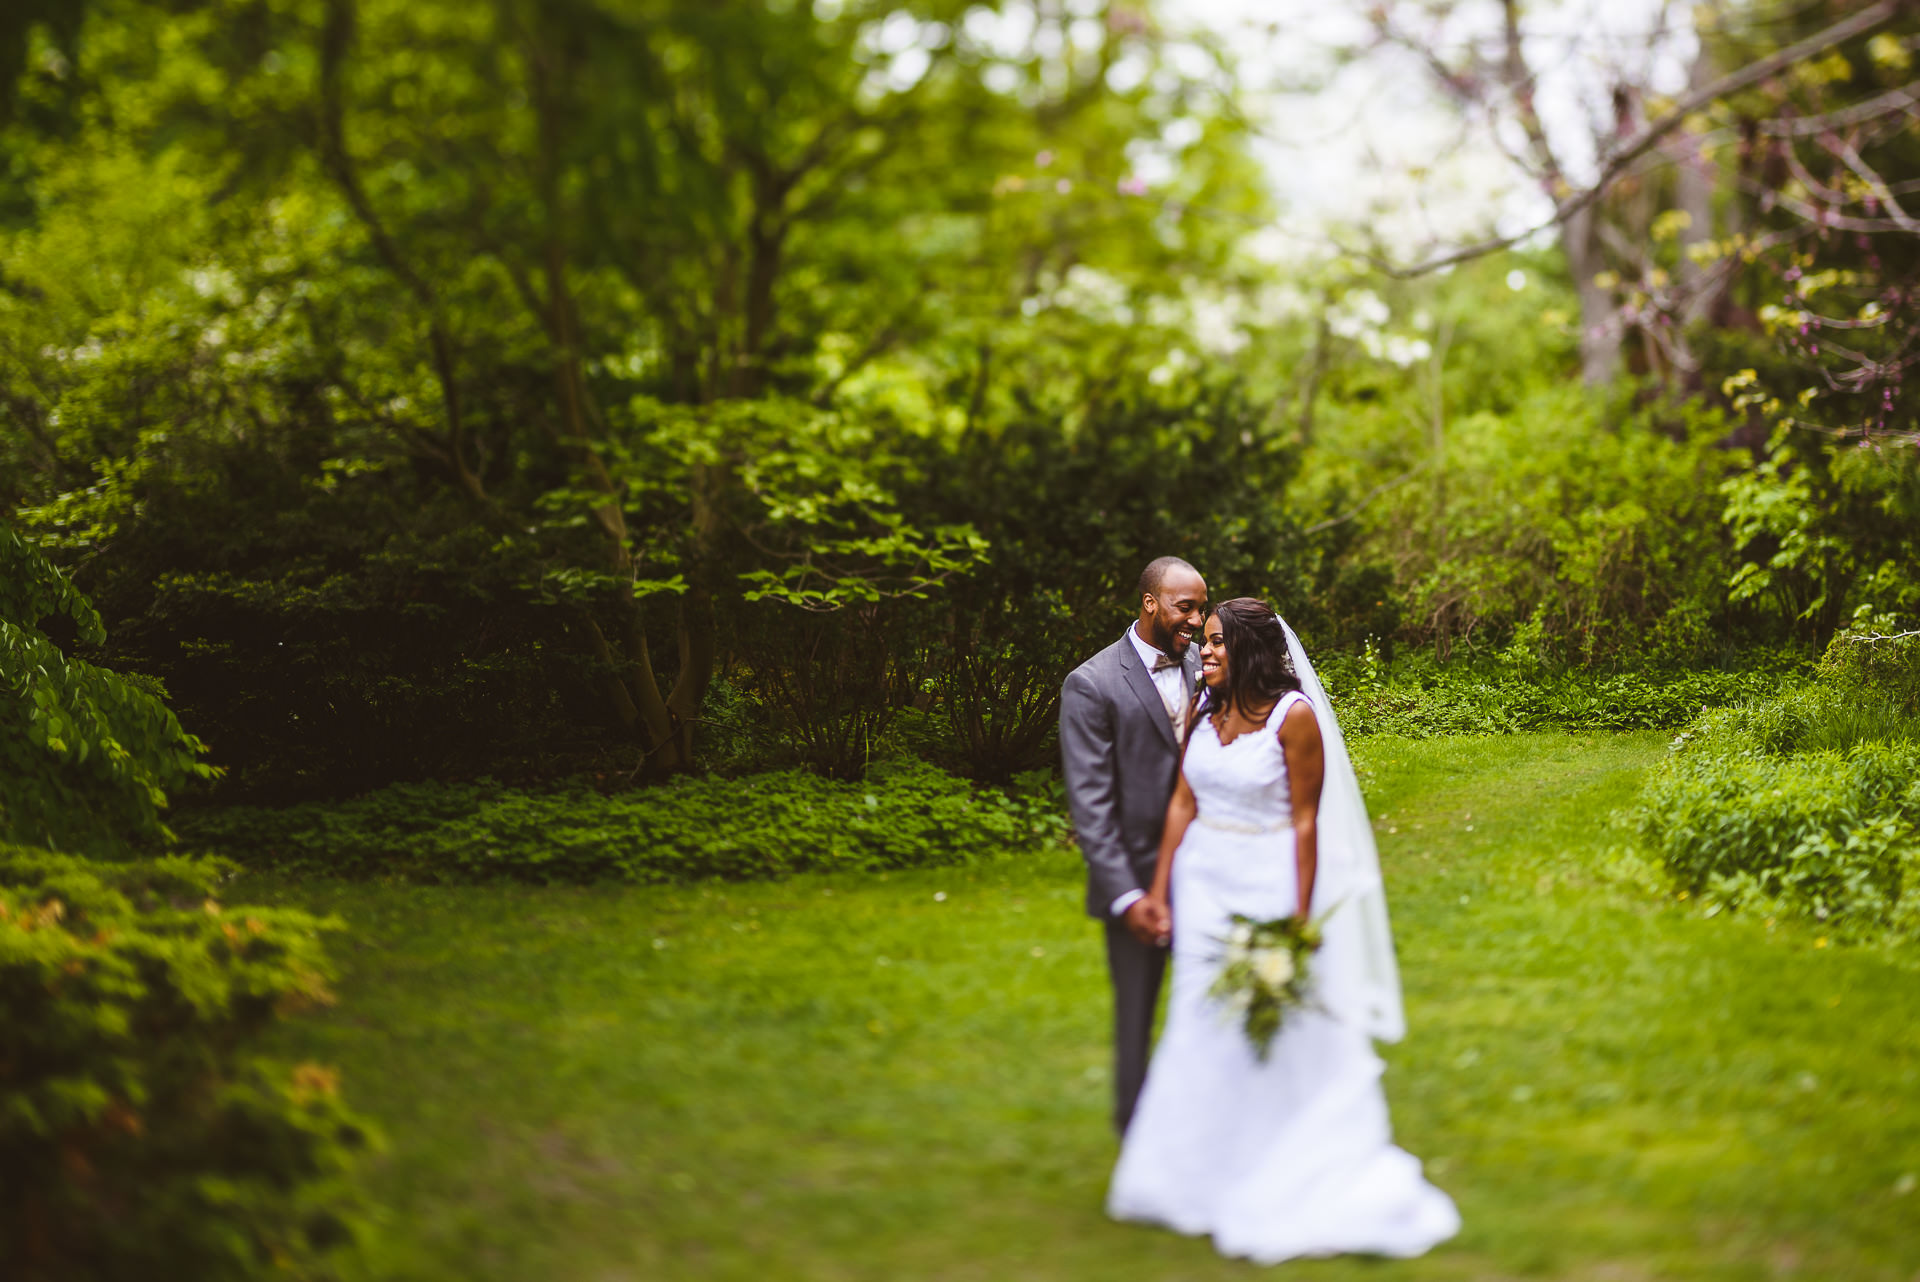 wedding photography at alex muir memorial gardens